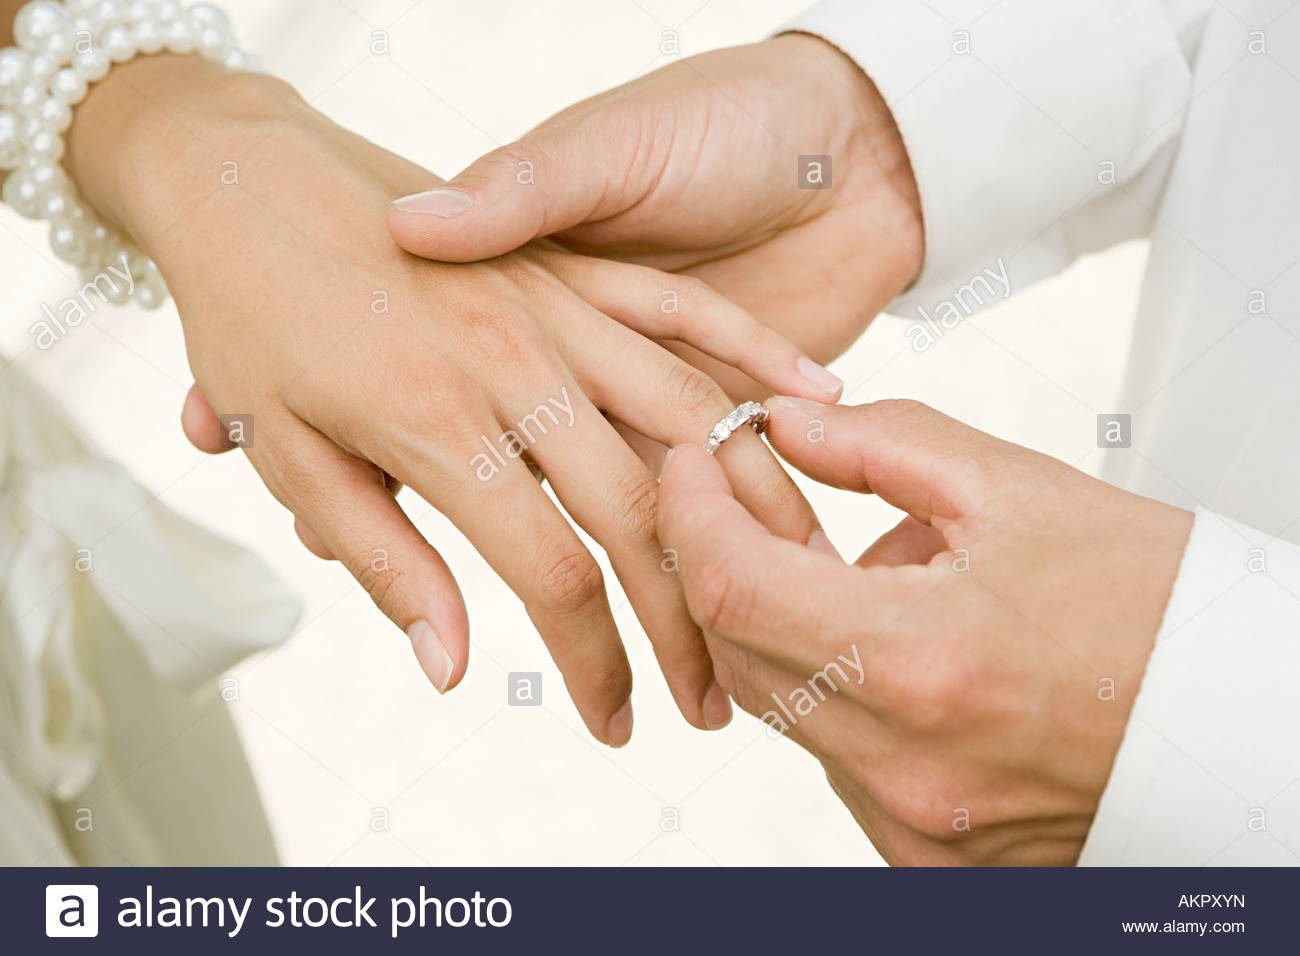 Man placing wedding ring on brides finger - Stock Image